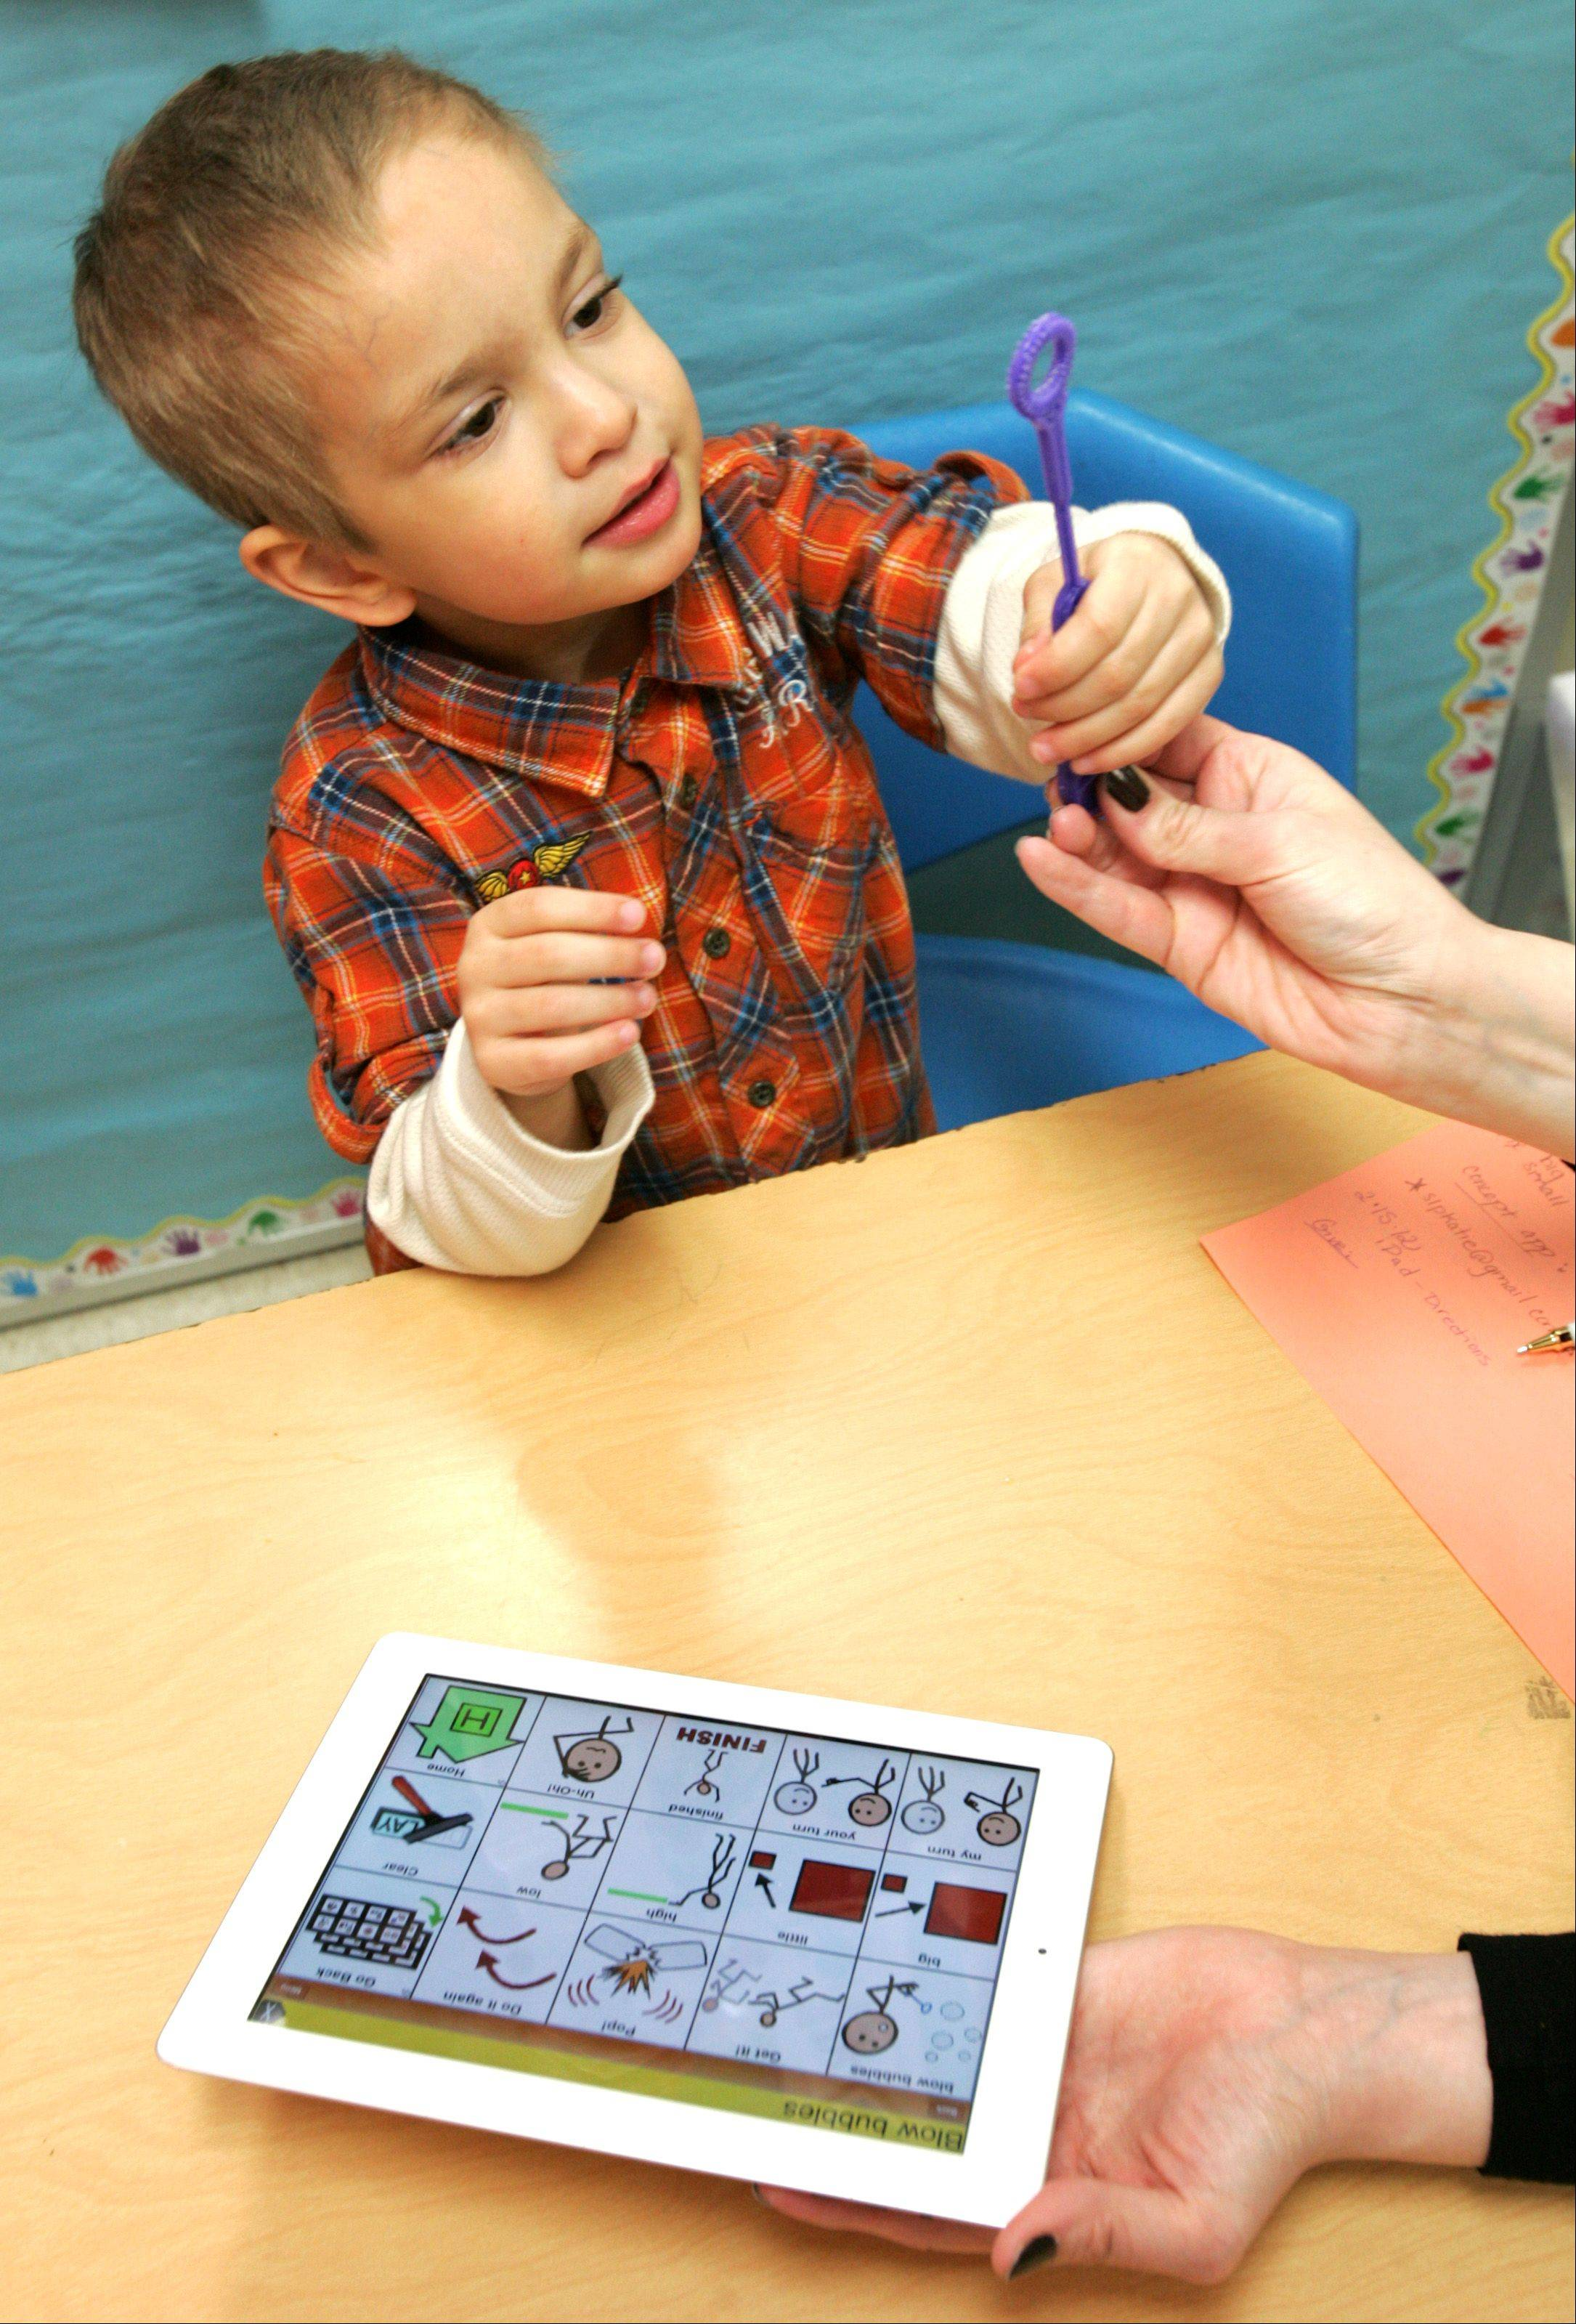 Reco Capparelli, 3, uses an iPad to blow bubbles -- part of an exercise on following directions during a therapy session with Wheaton-Warrenville Unit District 200 speech pathologist Nicole MacKinnon.